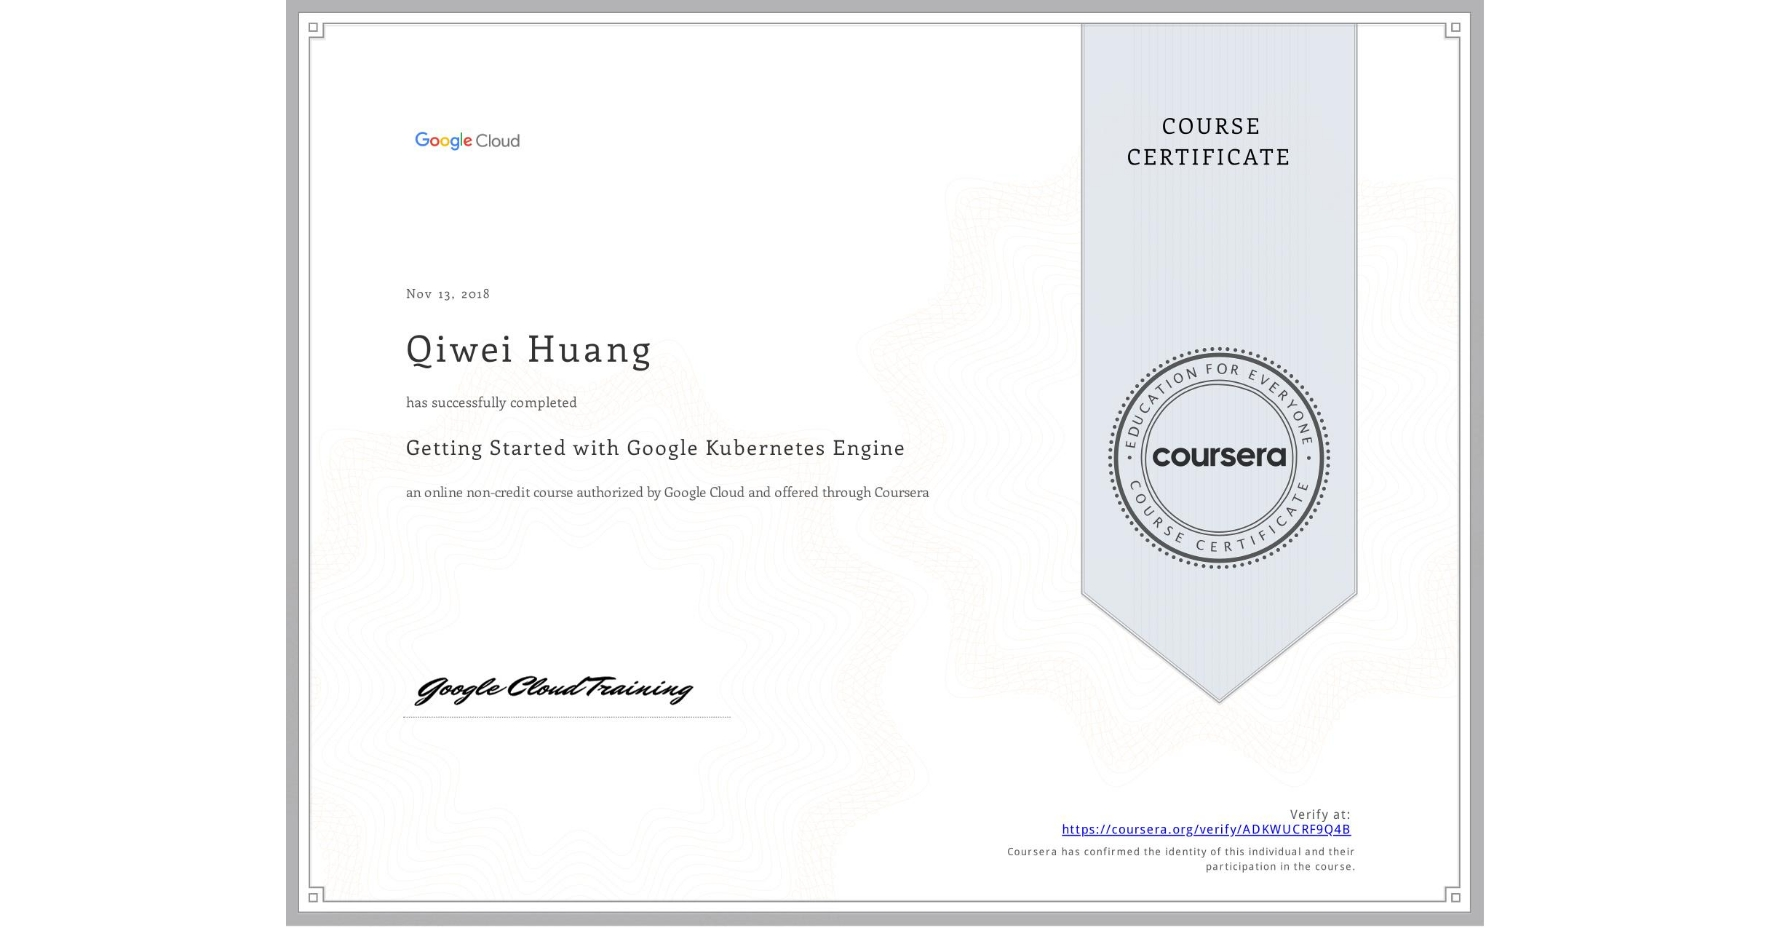 View certificate for Qiwei Huang, Getting Started with Google Kubernetes Engine, an online non-credit course authorized by Google Cloud and offered through Coursera